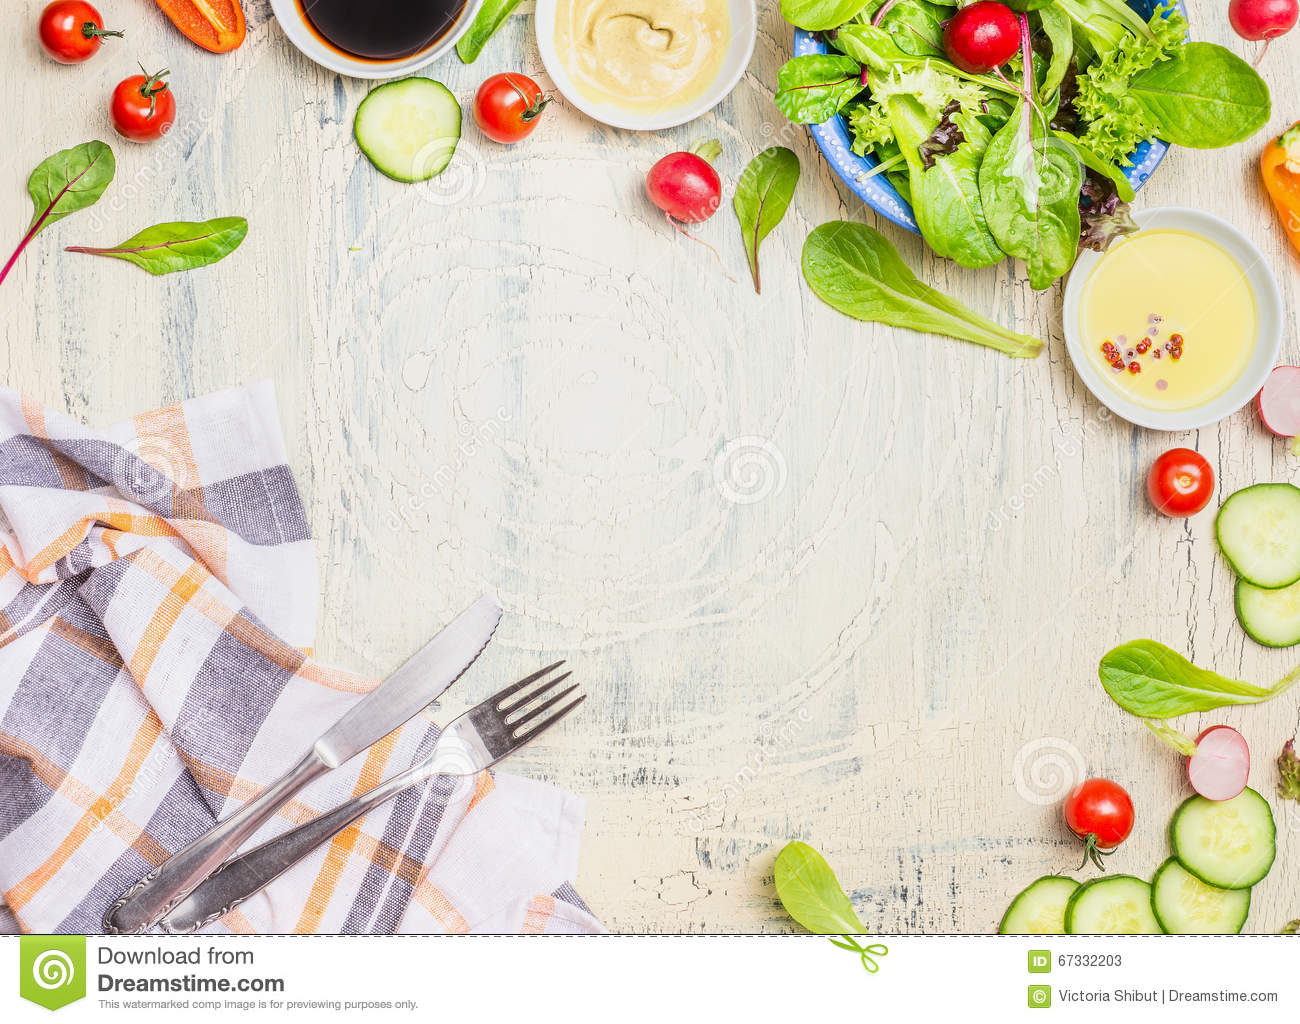 Vegetables salad preparation with dressings ,ingredients cutlery and kitchen checked napkin on light rustic background, top view